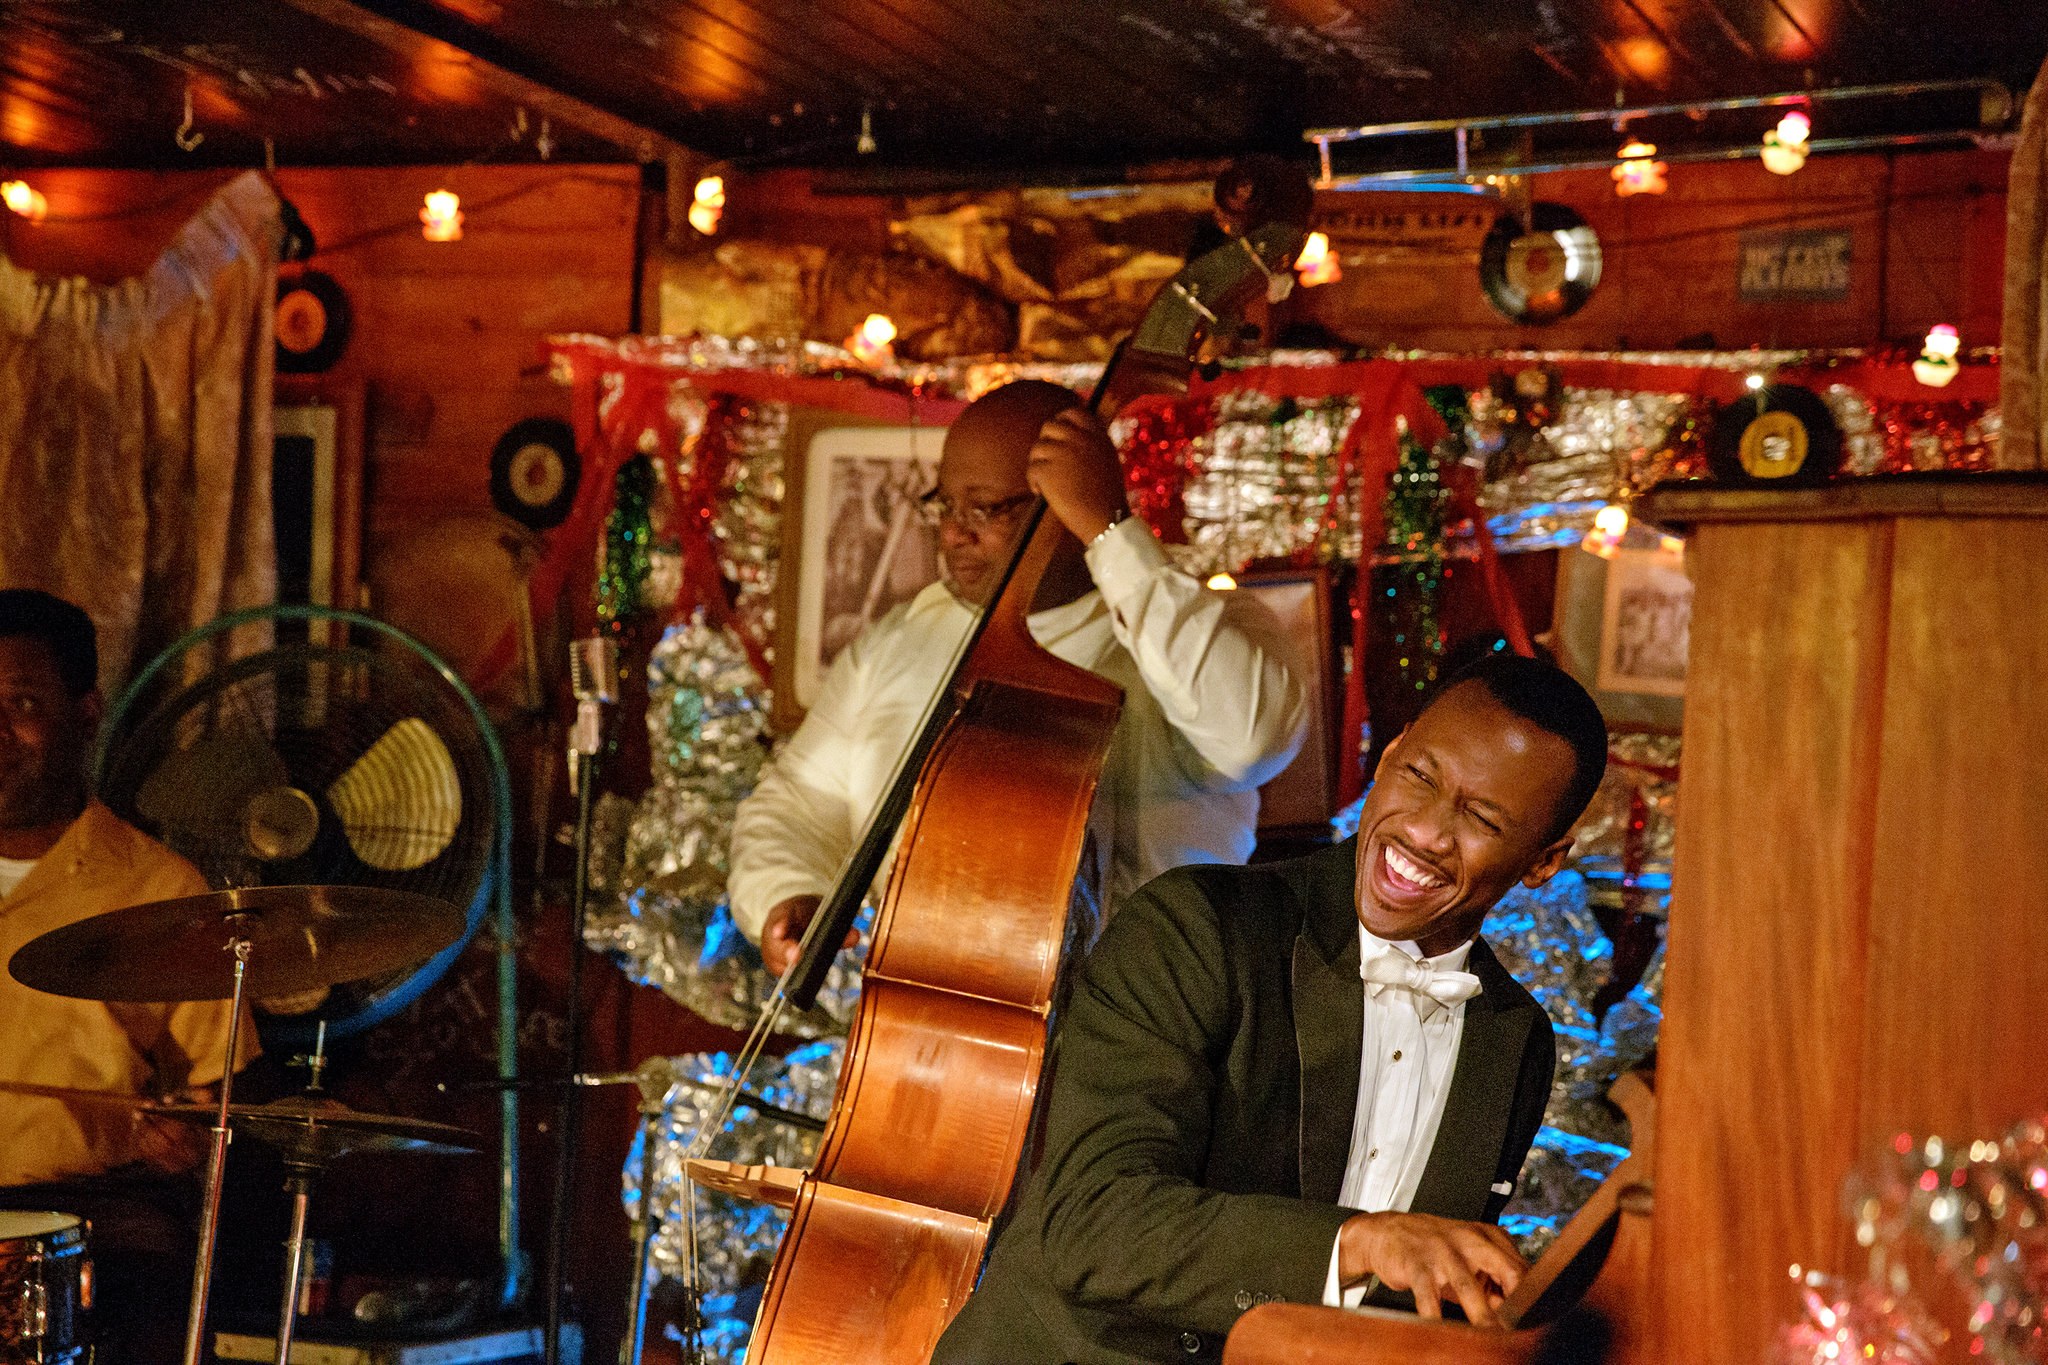 Mahershala Ali playing piano in the movie Green Book